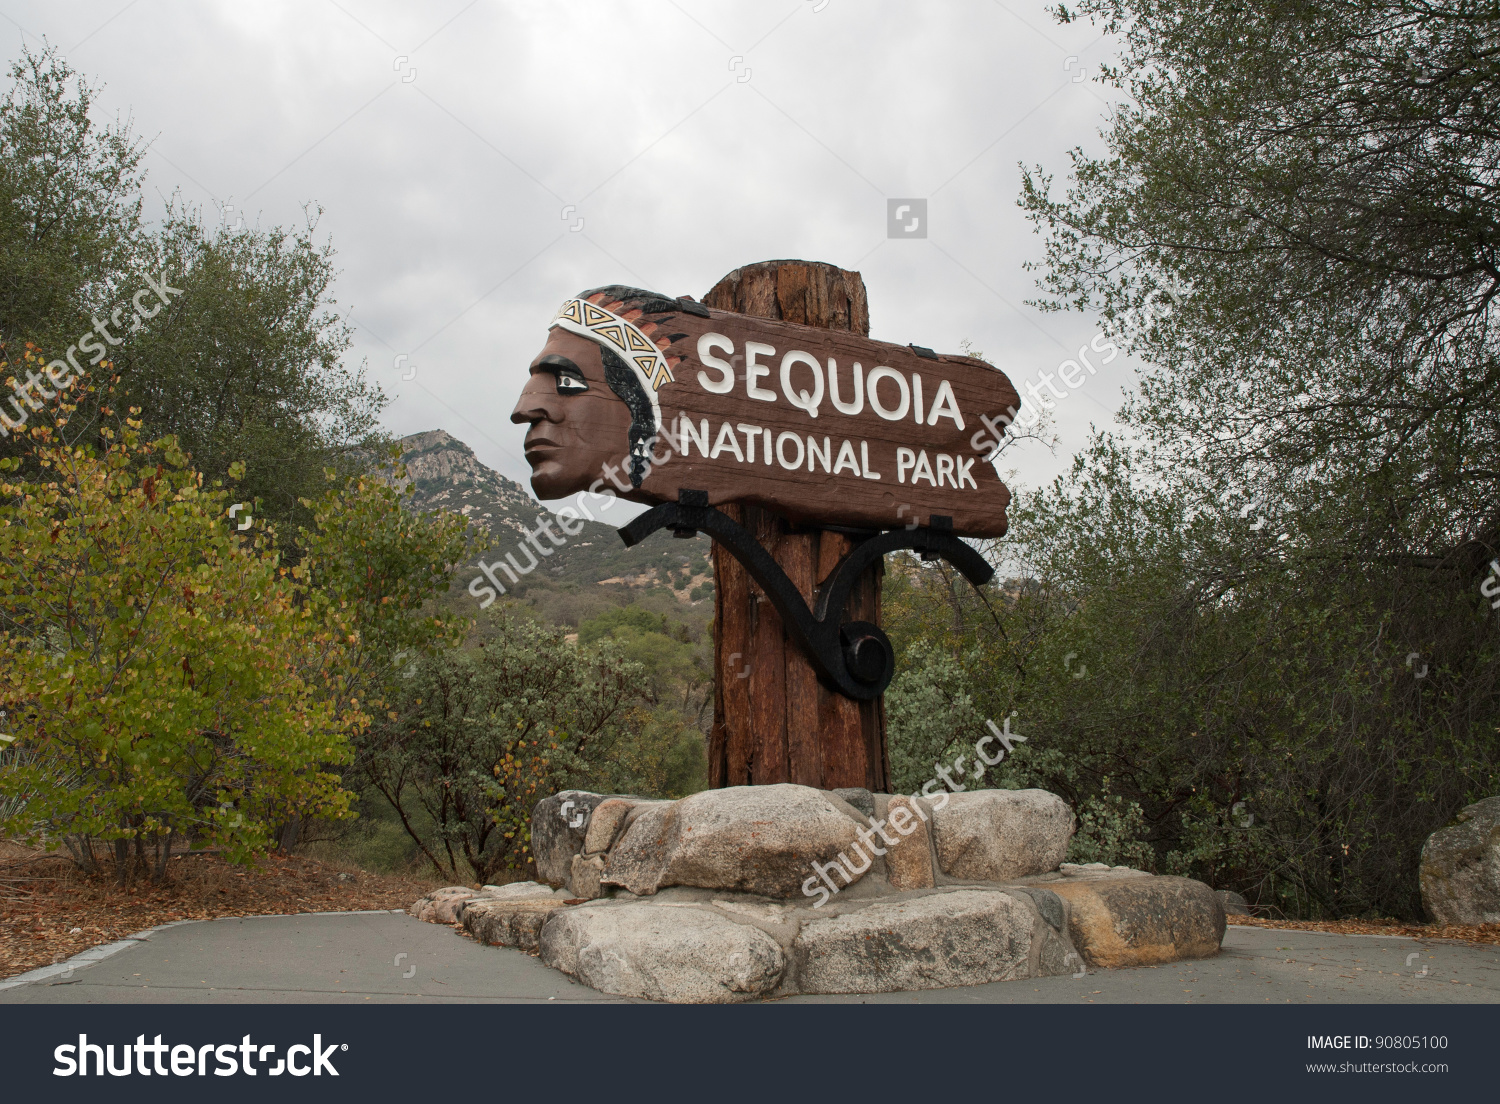 Sequoia National Park clipart #7, Download drawings